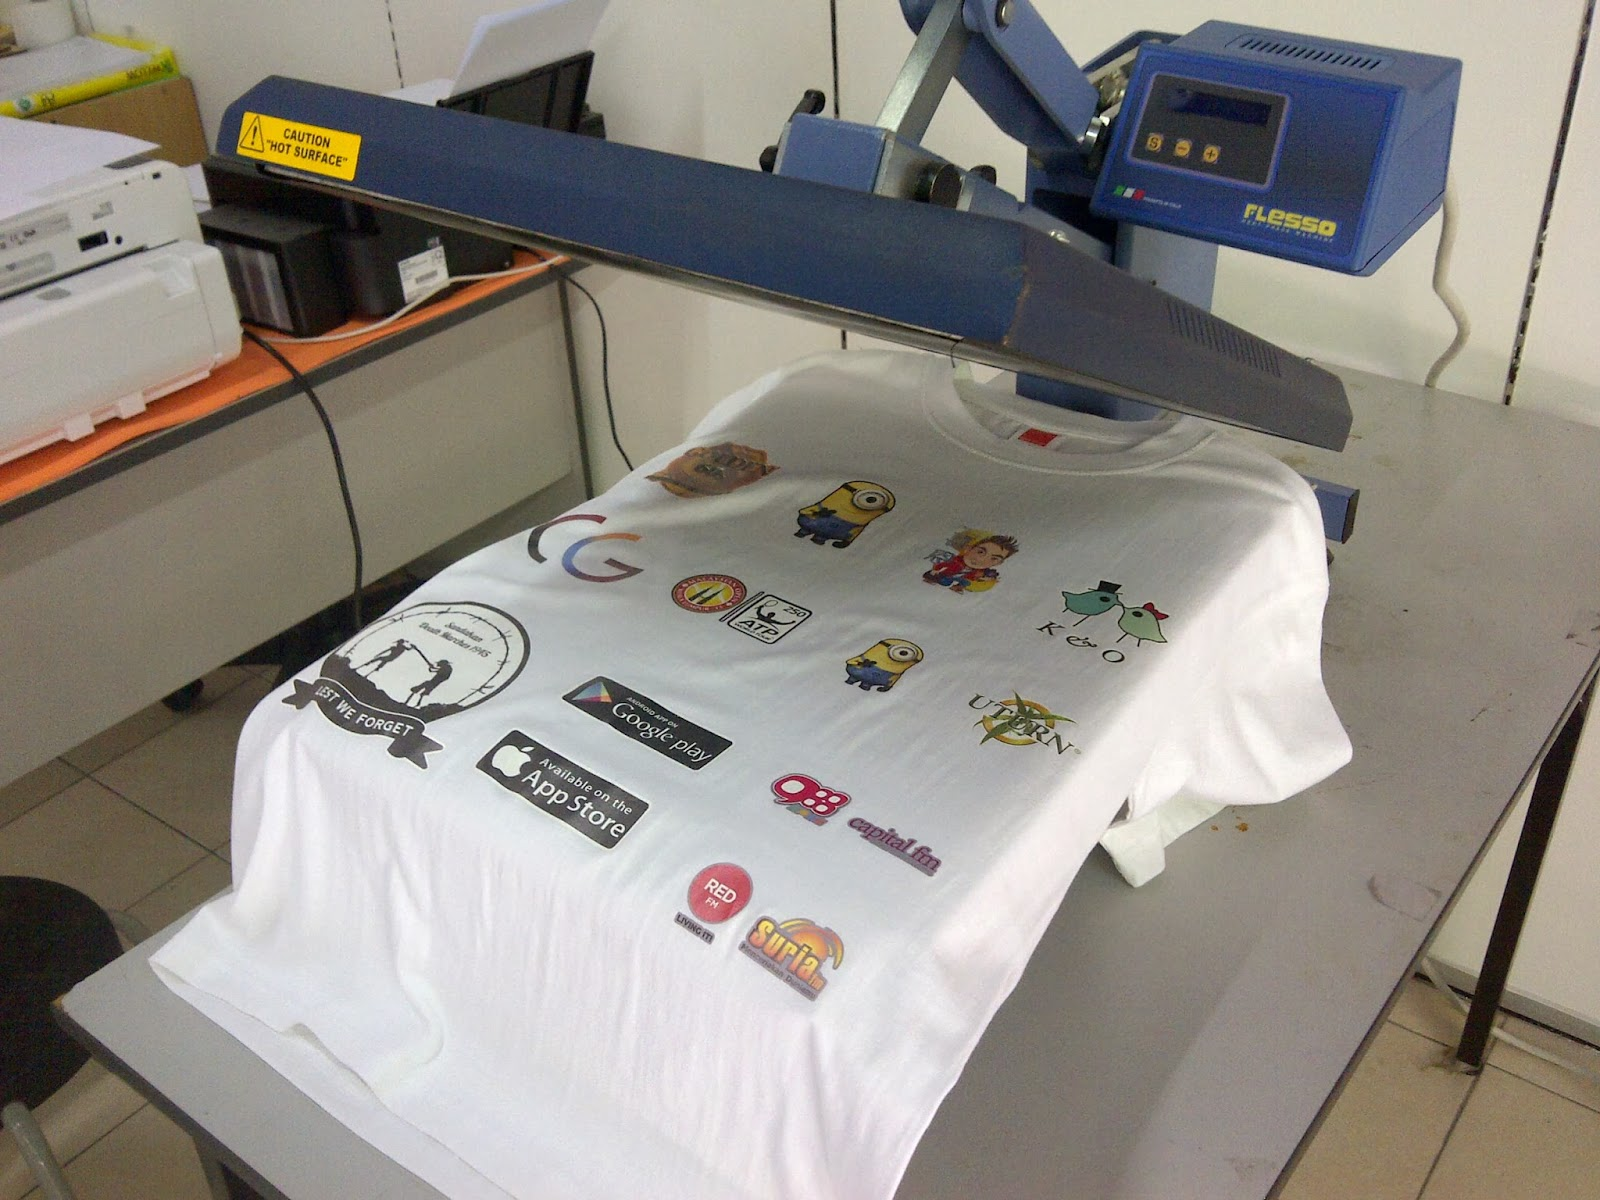 Tshirt printing mug printing in kl button badge heat for T shirt designing and printing